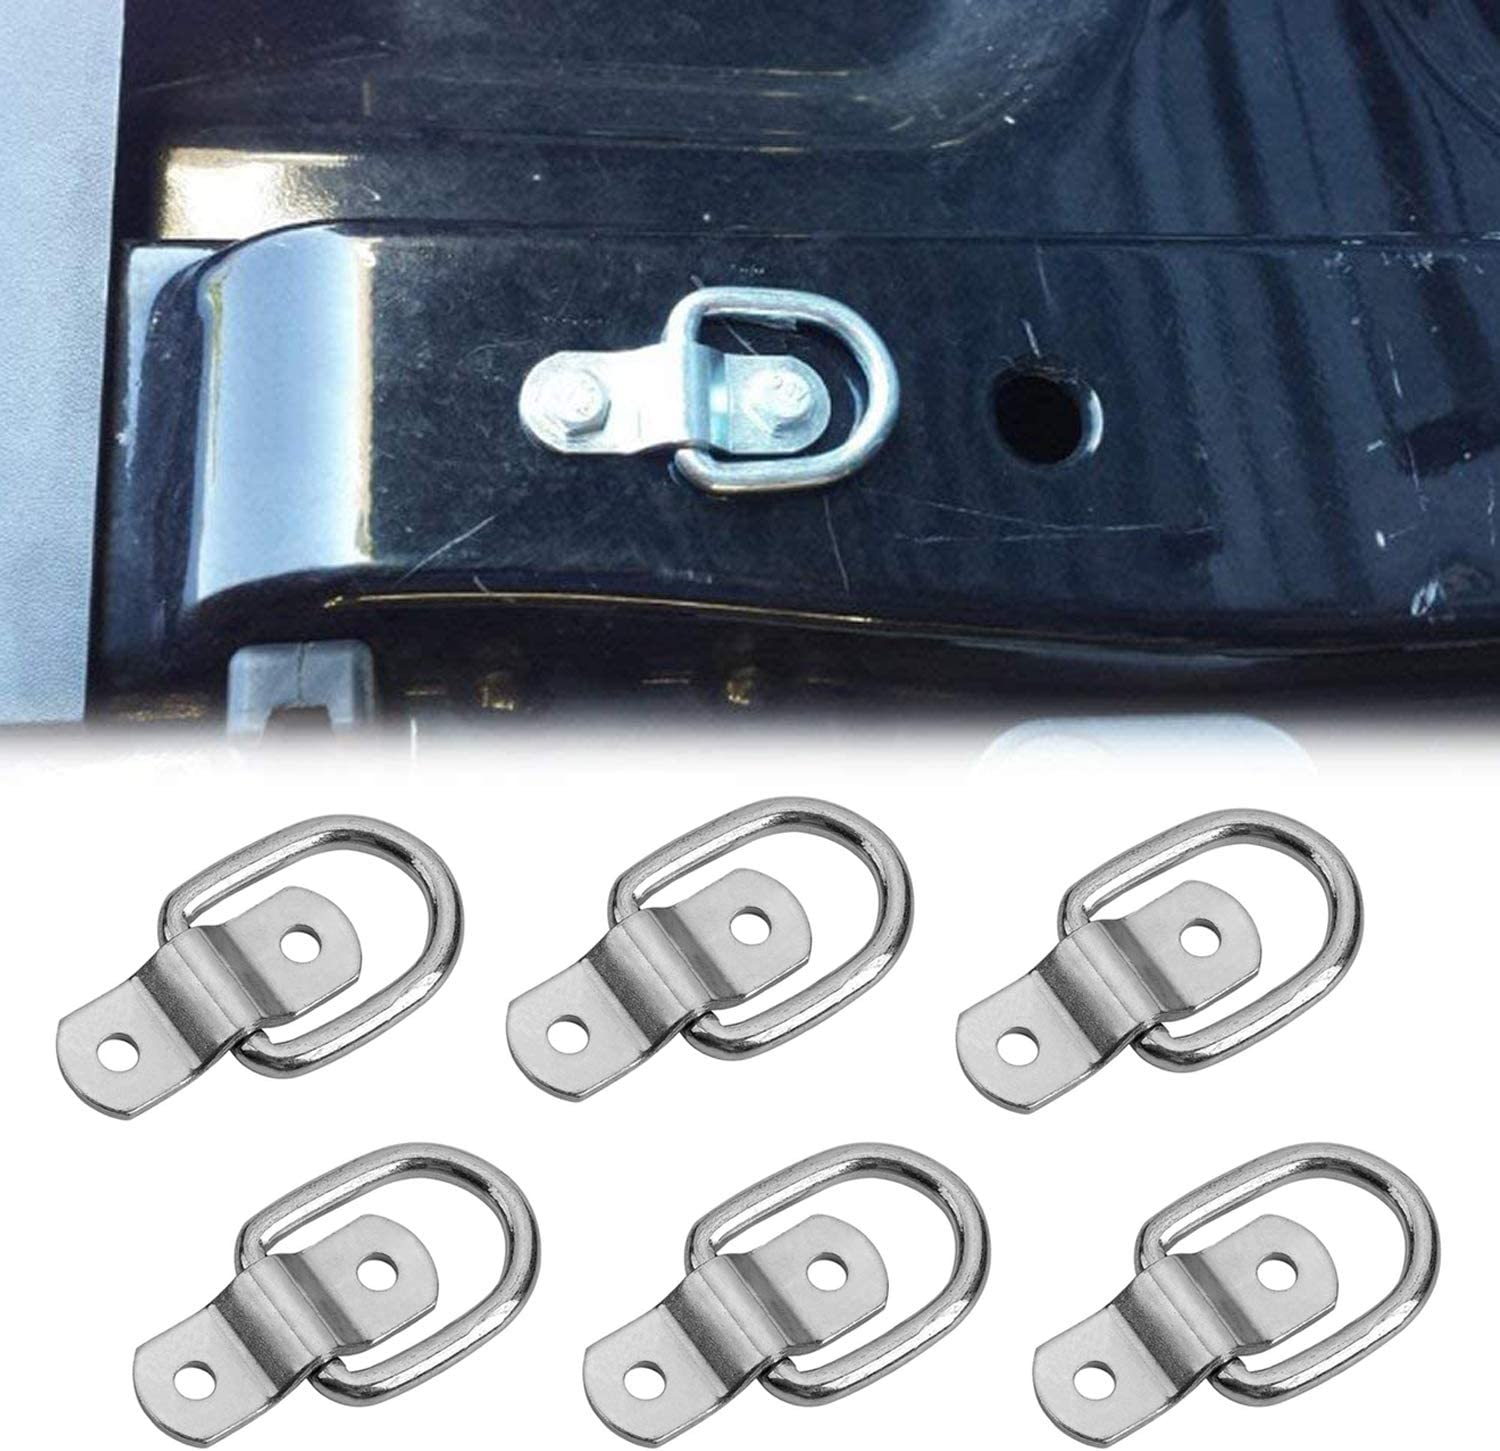 Fixed Ring with 12 Screws for Boat Trailer RV Ground Mounting Loads 6 PCS D-Ring Binding Ring 1//4 Inch Heavy Duty D-Ring Kayak Car